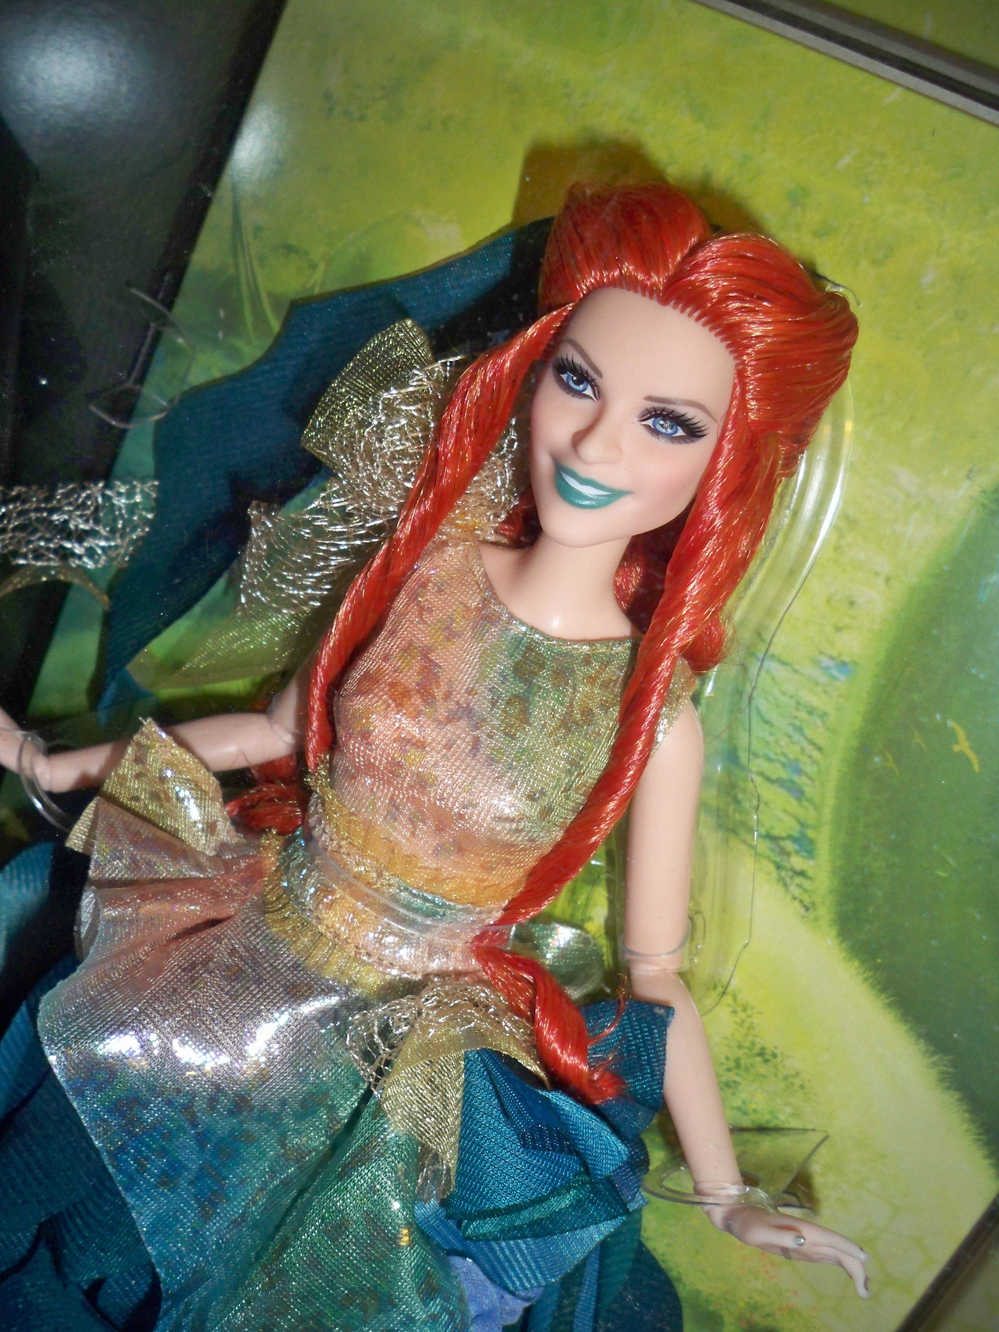 Whatsit Reese Witherspoon IN STOCK NOW Barbie Disney A Wrinkle in Time Mrs